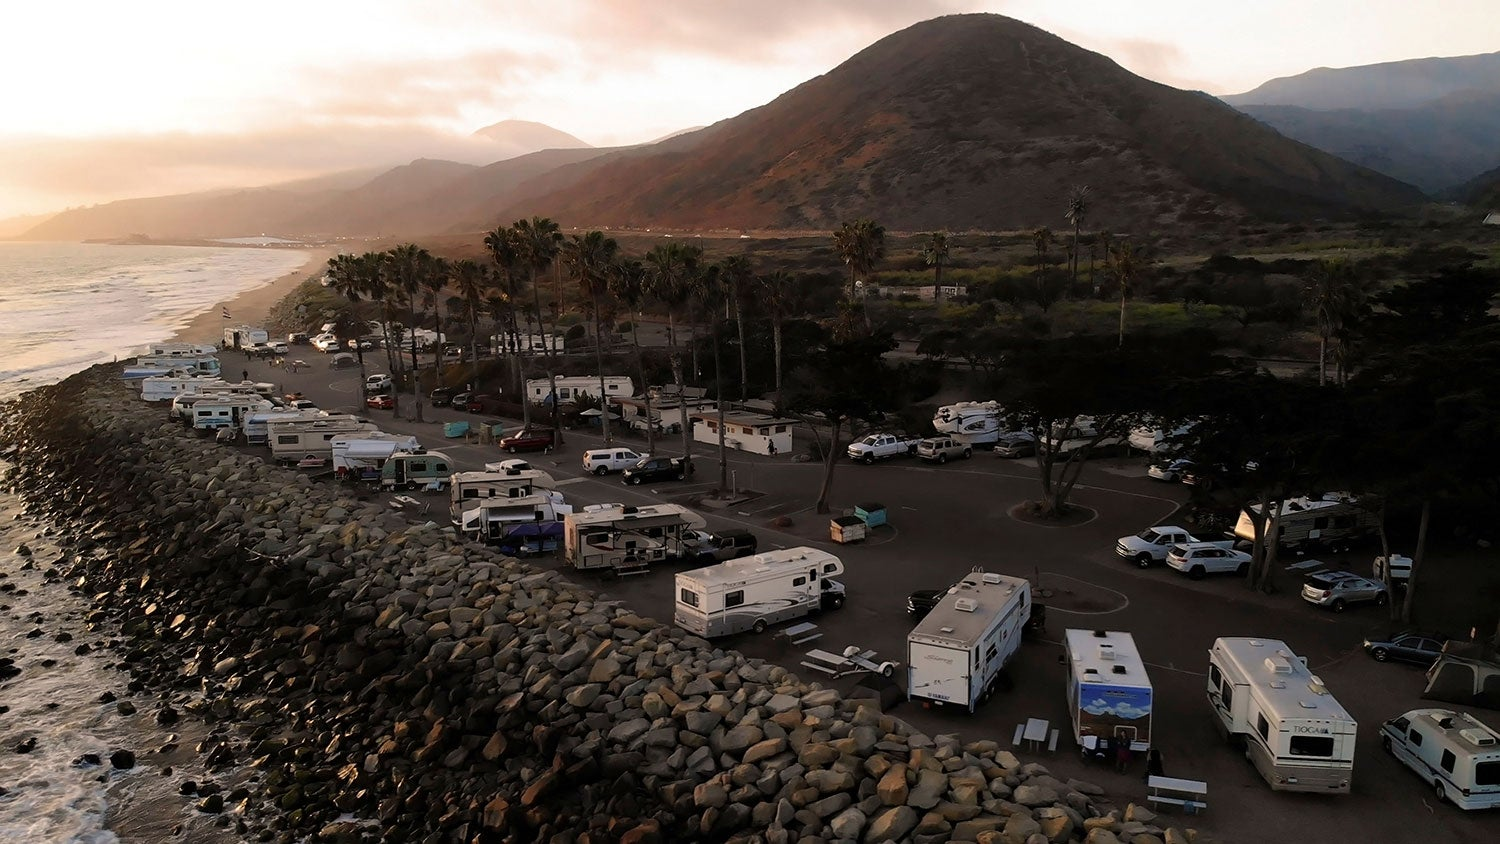 RVs in line in front of a mountain near a coast while beach camping in california